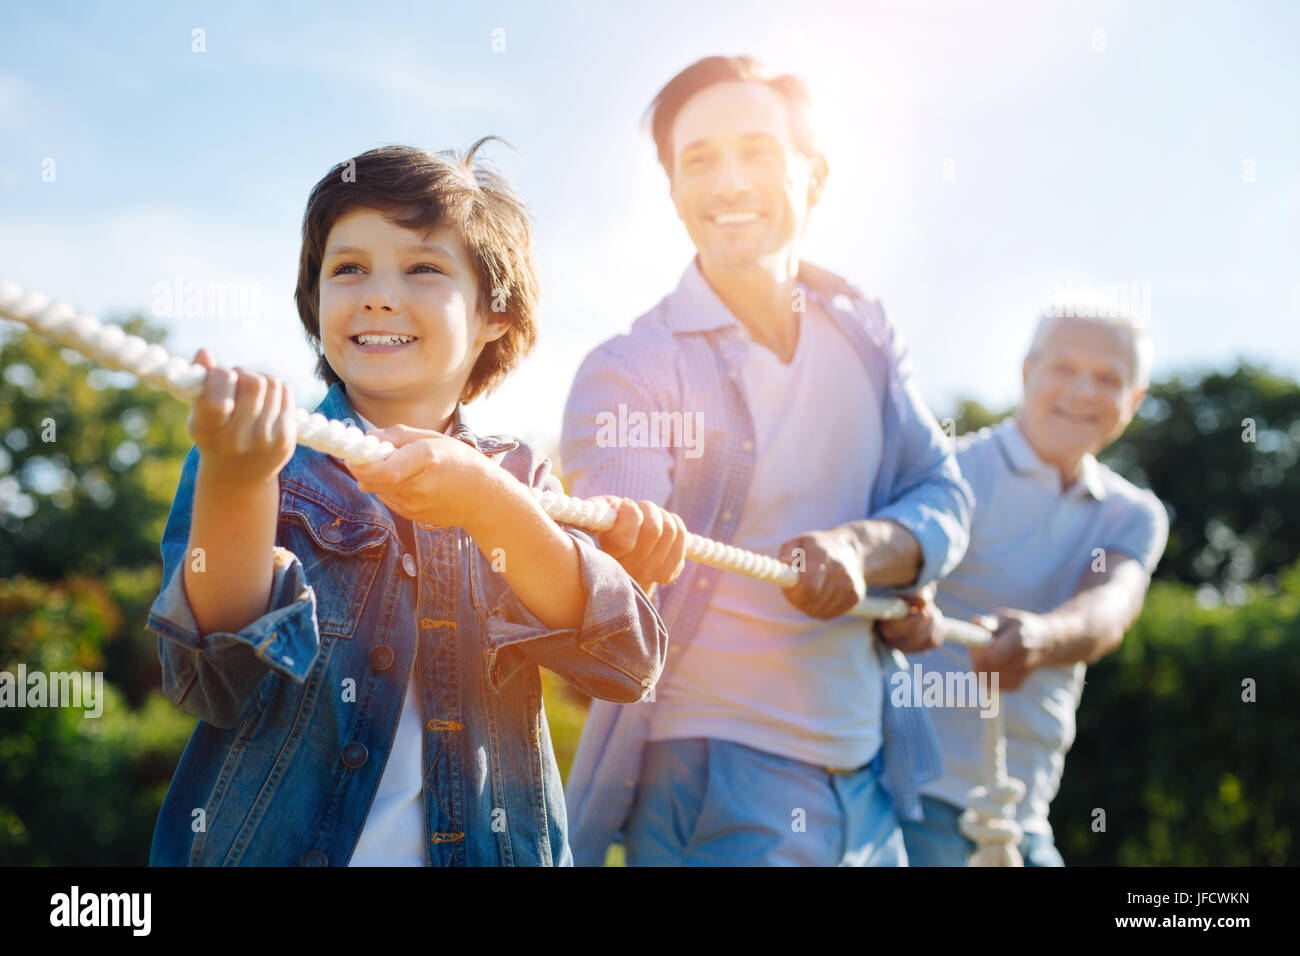 Real support. Enthusiastic focused nice family acting as a team while playing tug war and having fun outdoors in - Stock Image